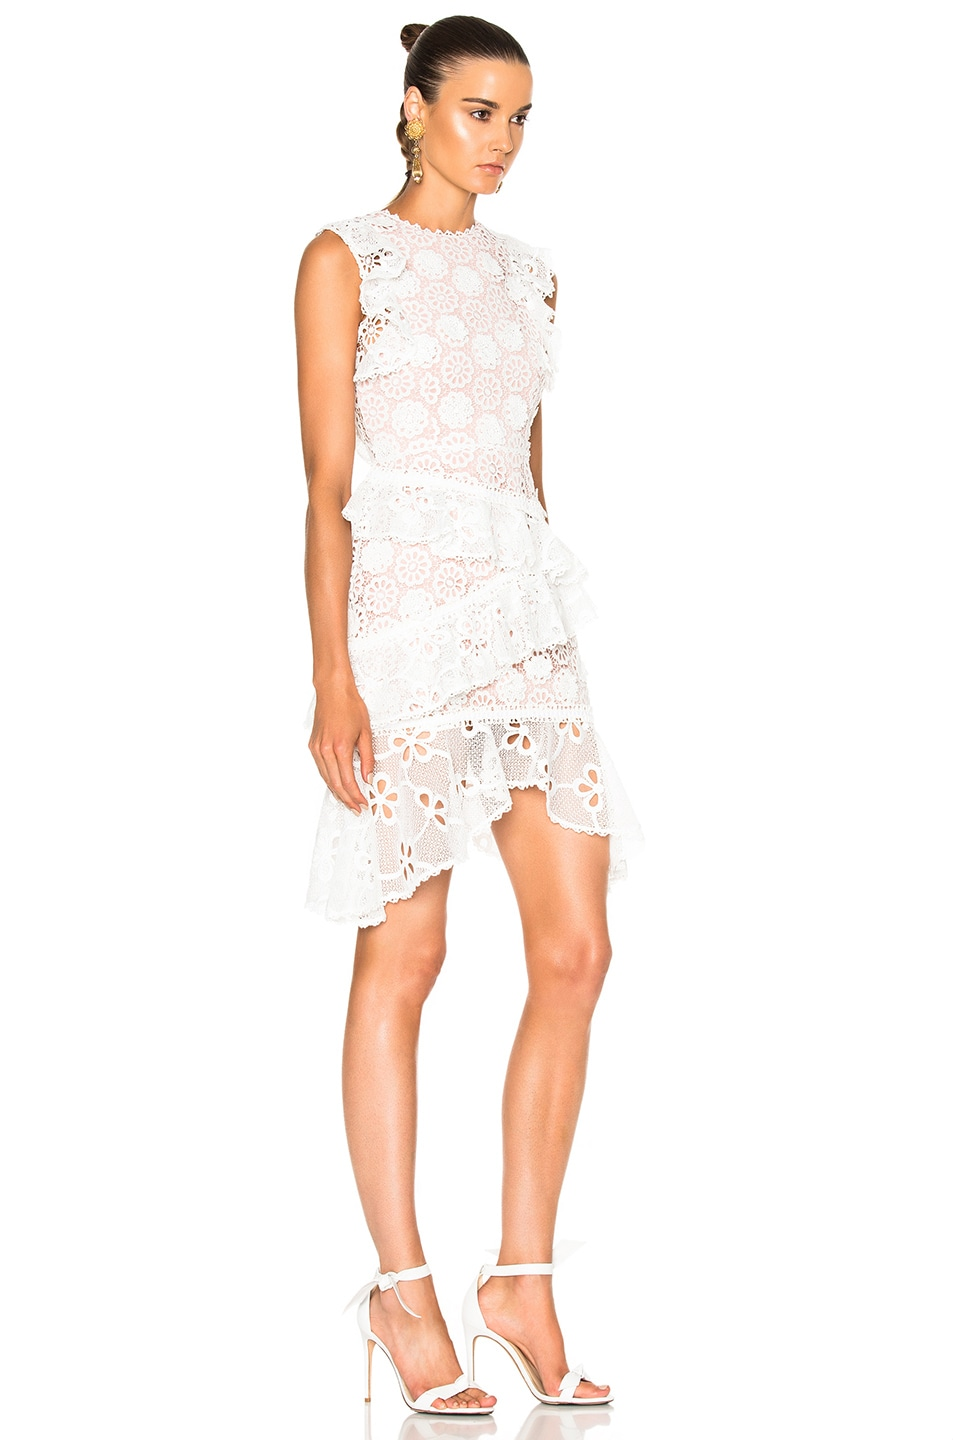 637338fe56729 Image 4 of Alexis Arleigh Dress in White